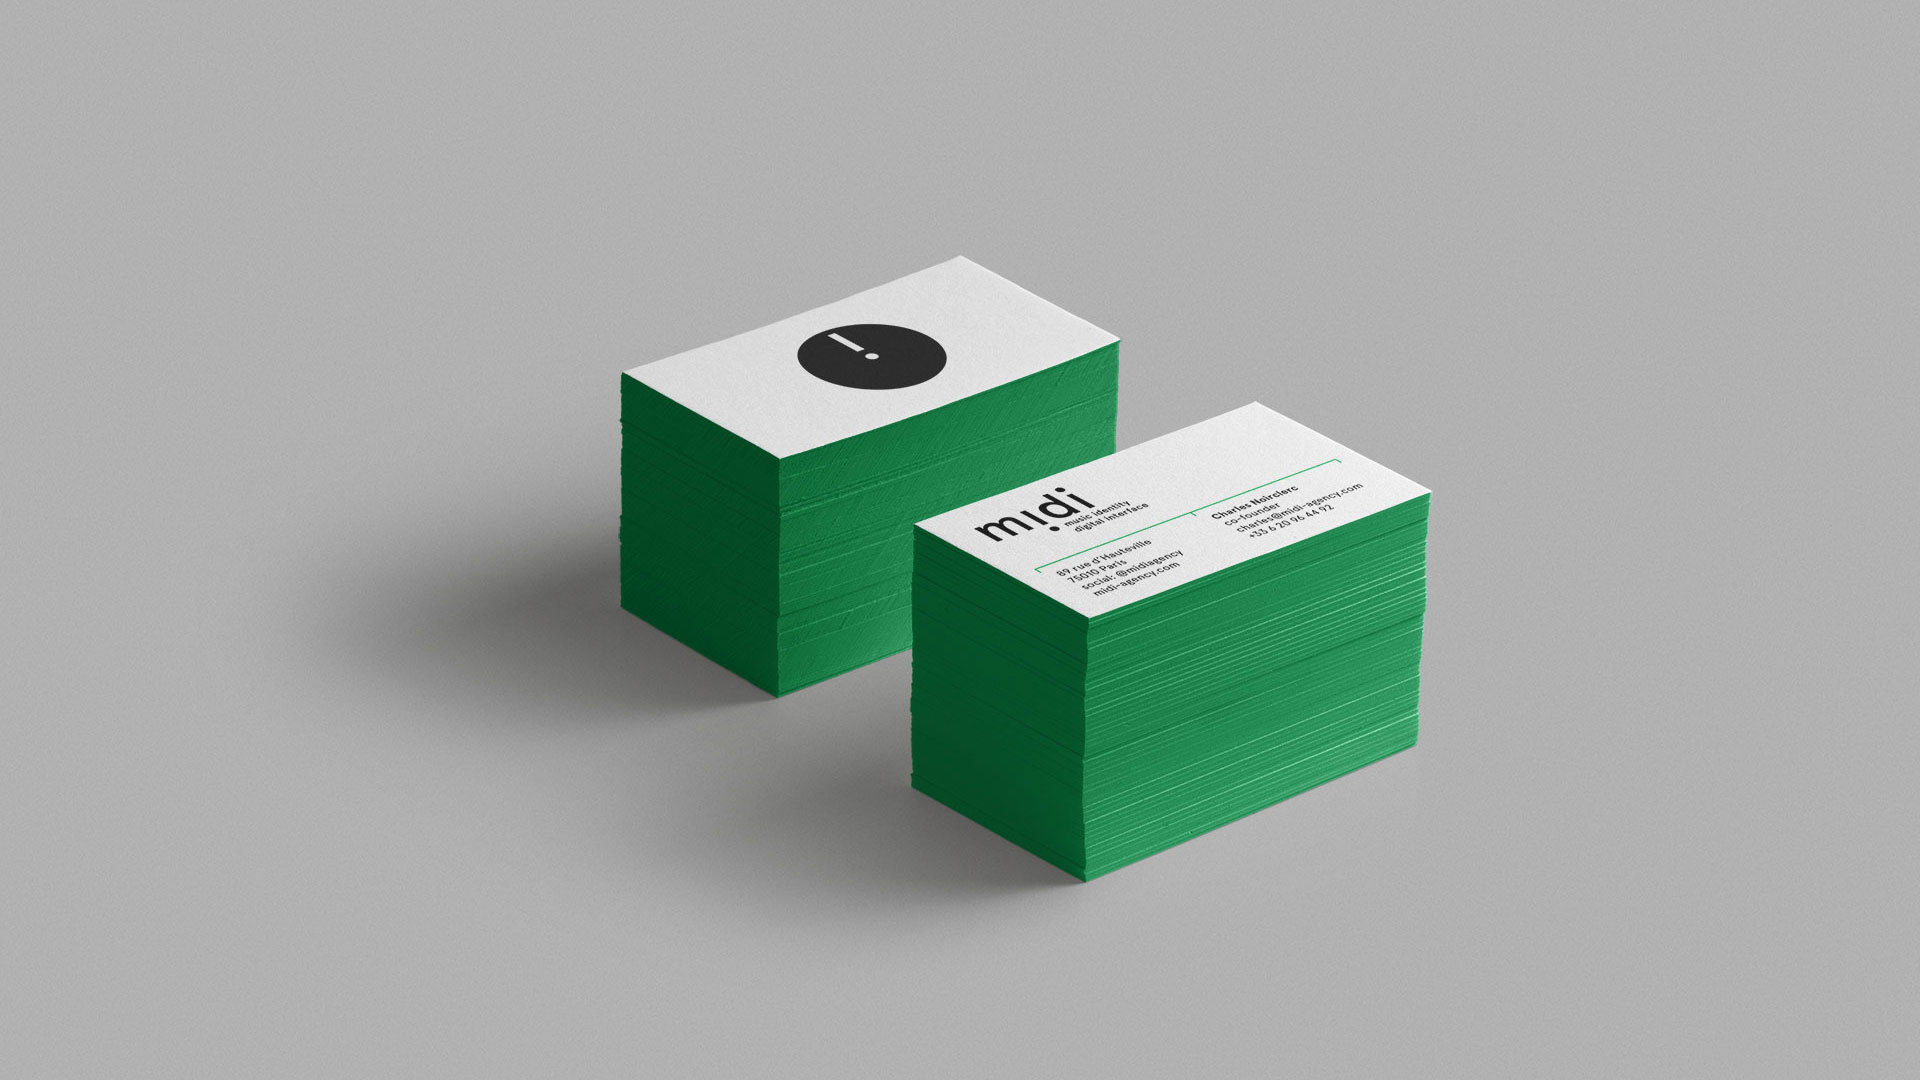 Business-Card-Midi-Graphic-Design-Identity-Stationary-Plastac16-89ok